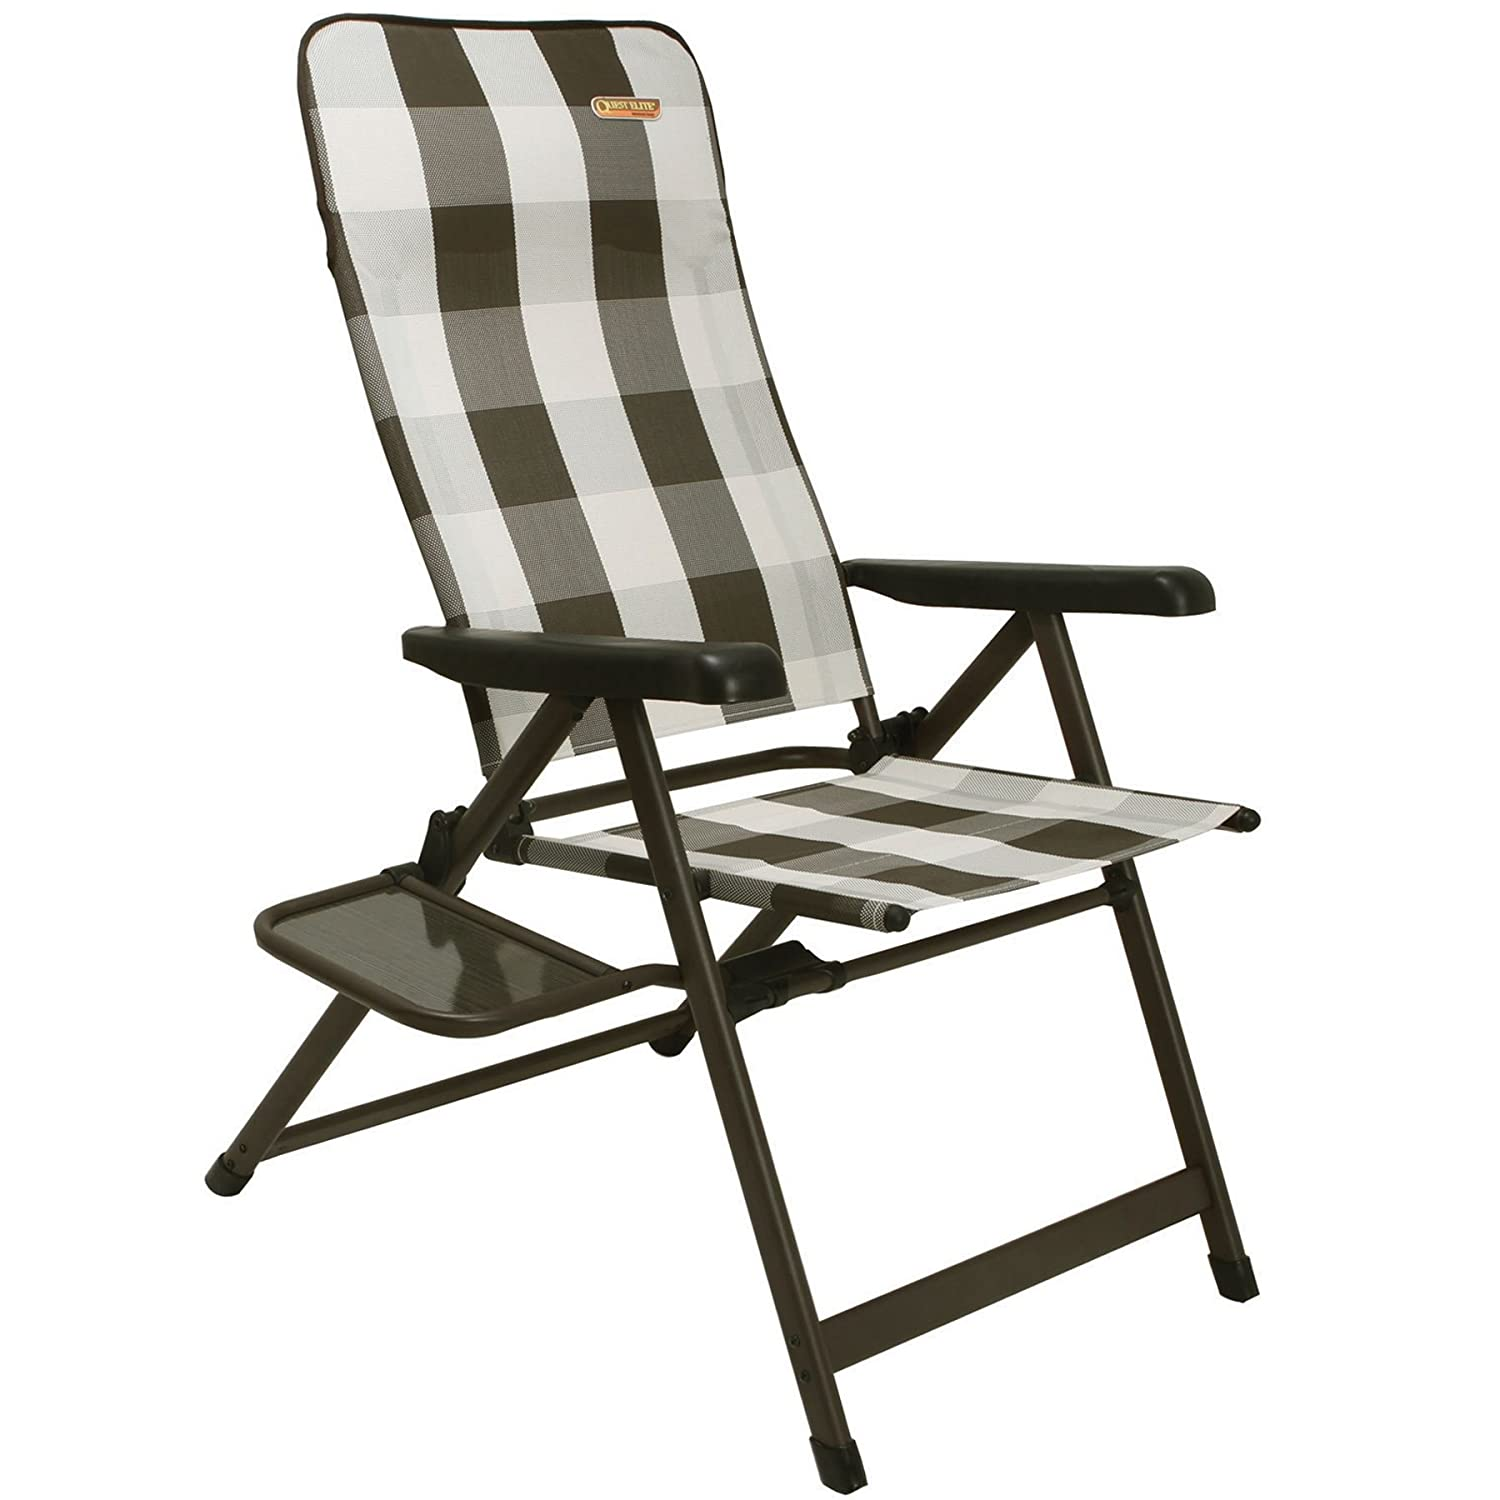 Quest Elite Marrakesh XL Reclining Chair with Side Table Amazon